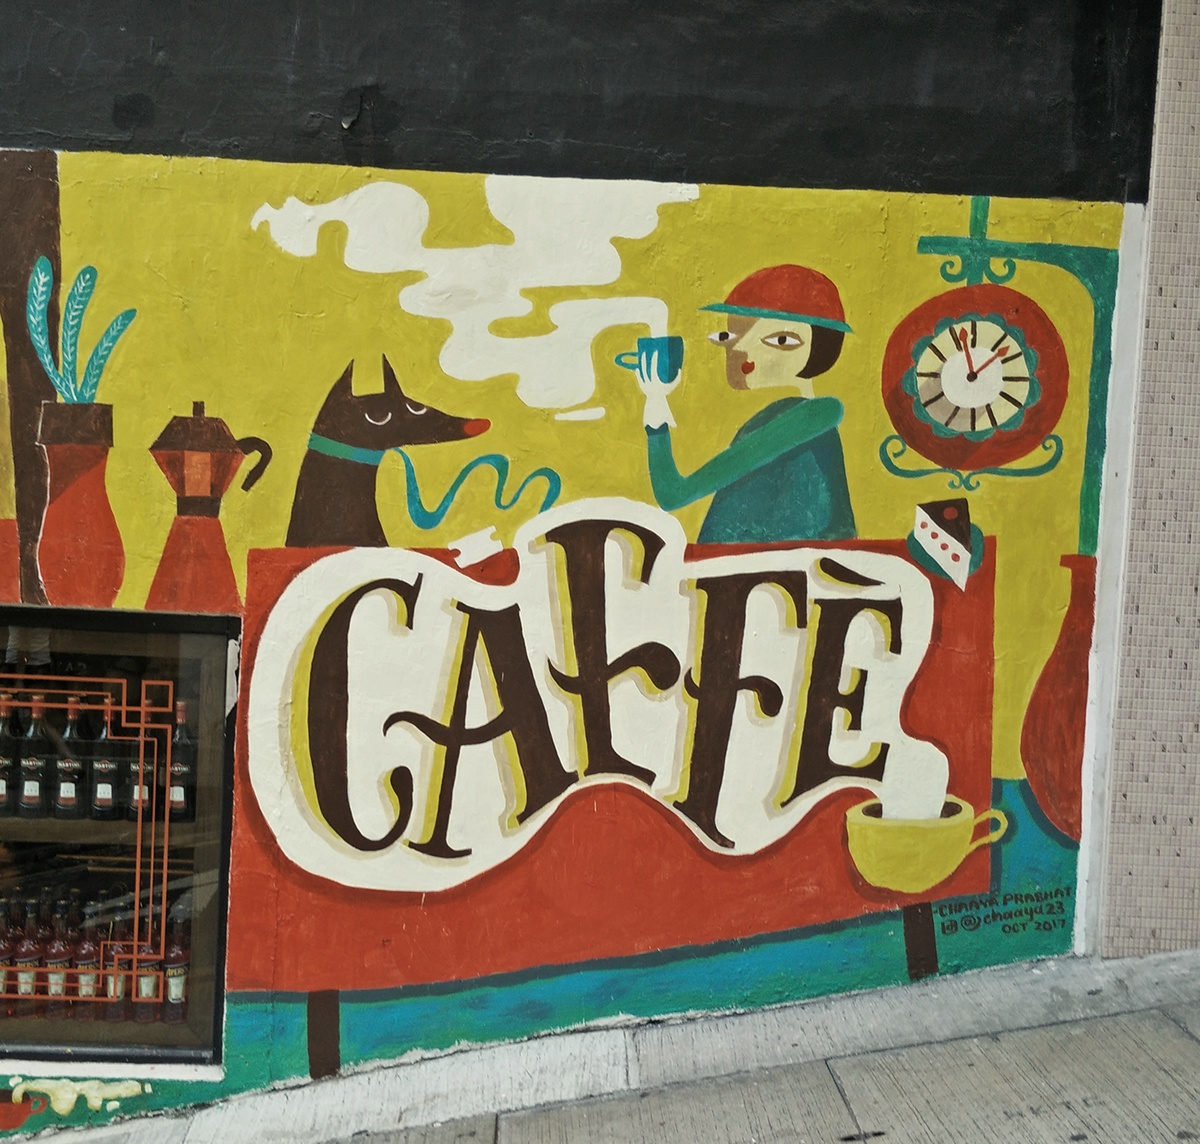 Caffè - Wall mural, Hong Kong on Student Show